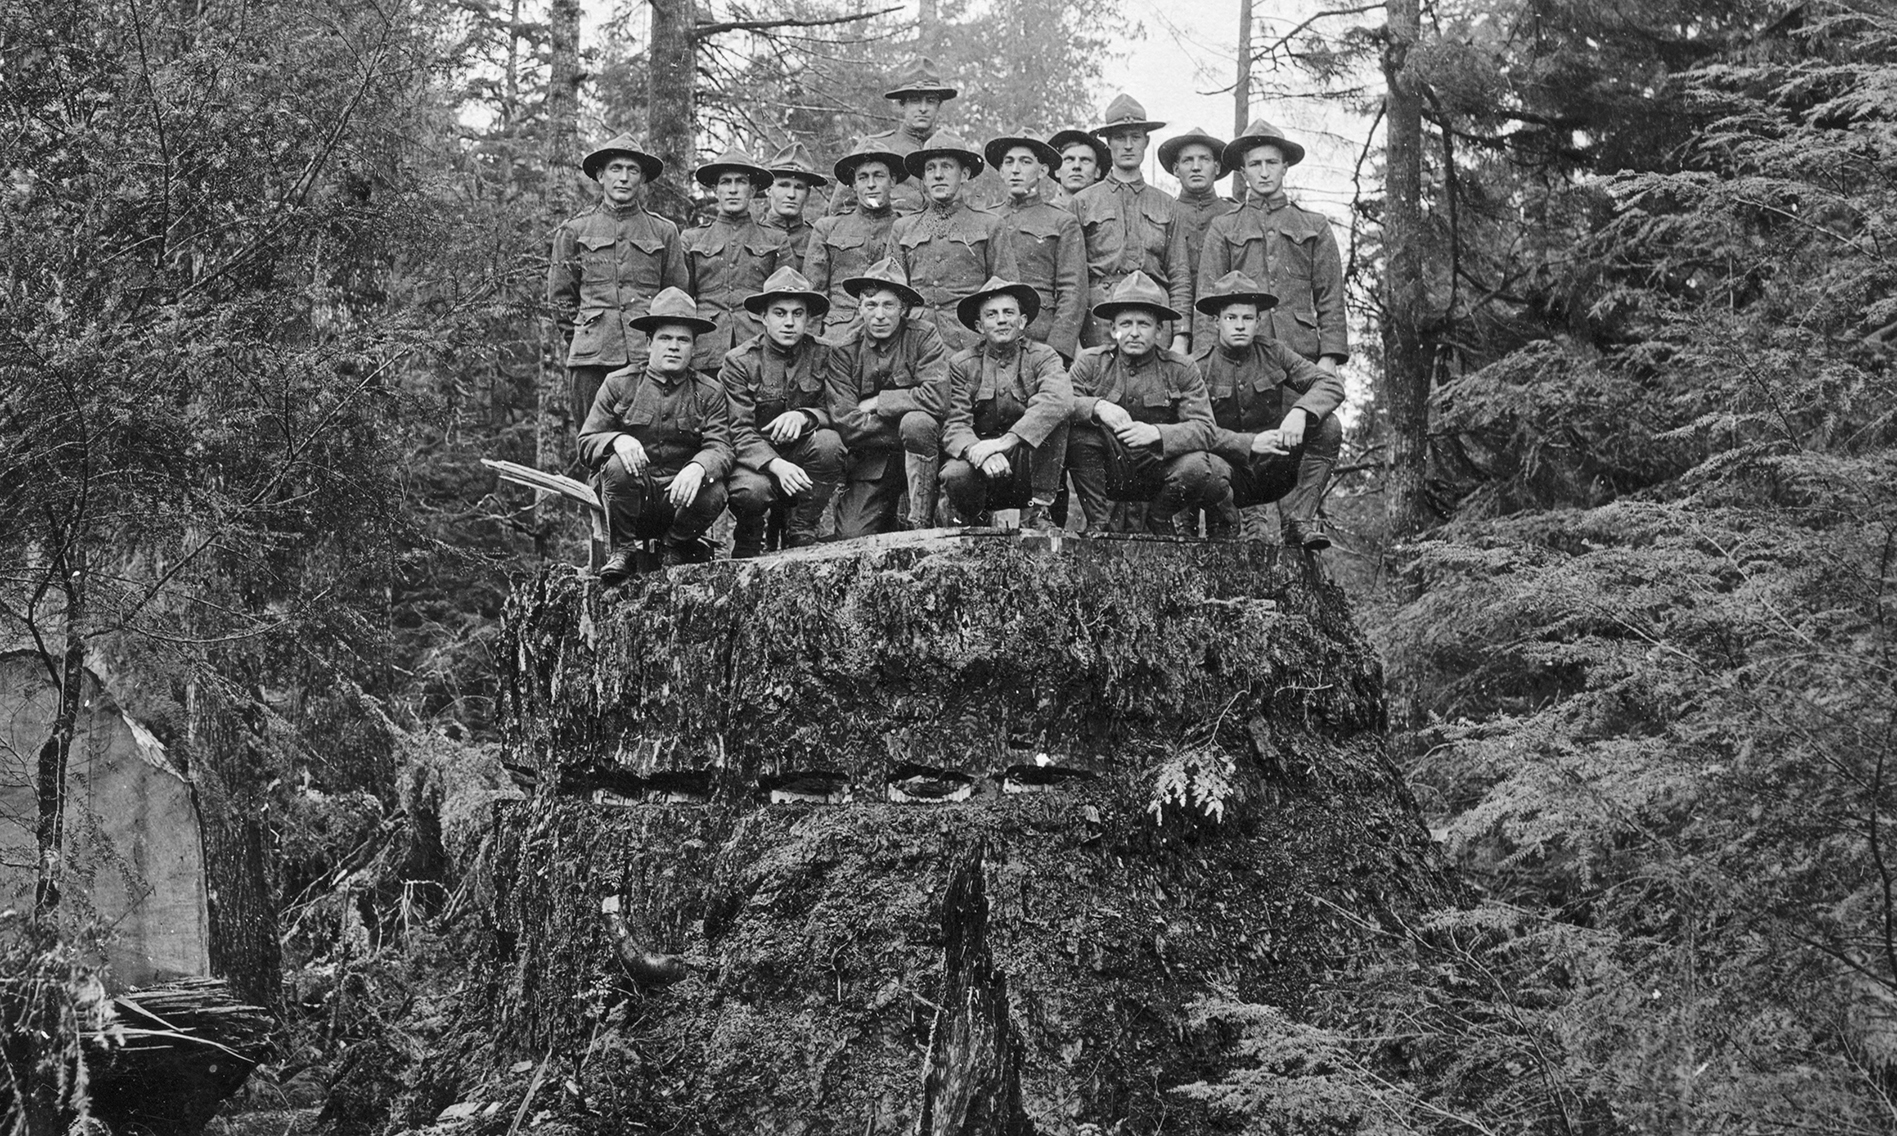 Soldiers on stump_reduced